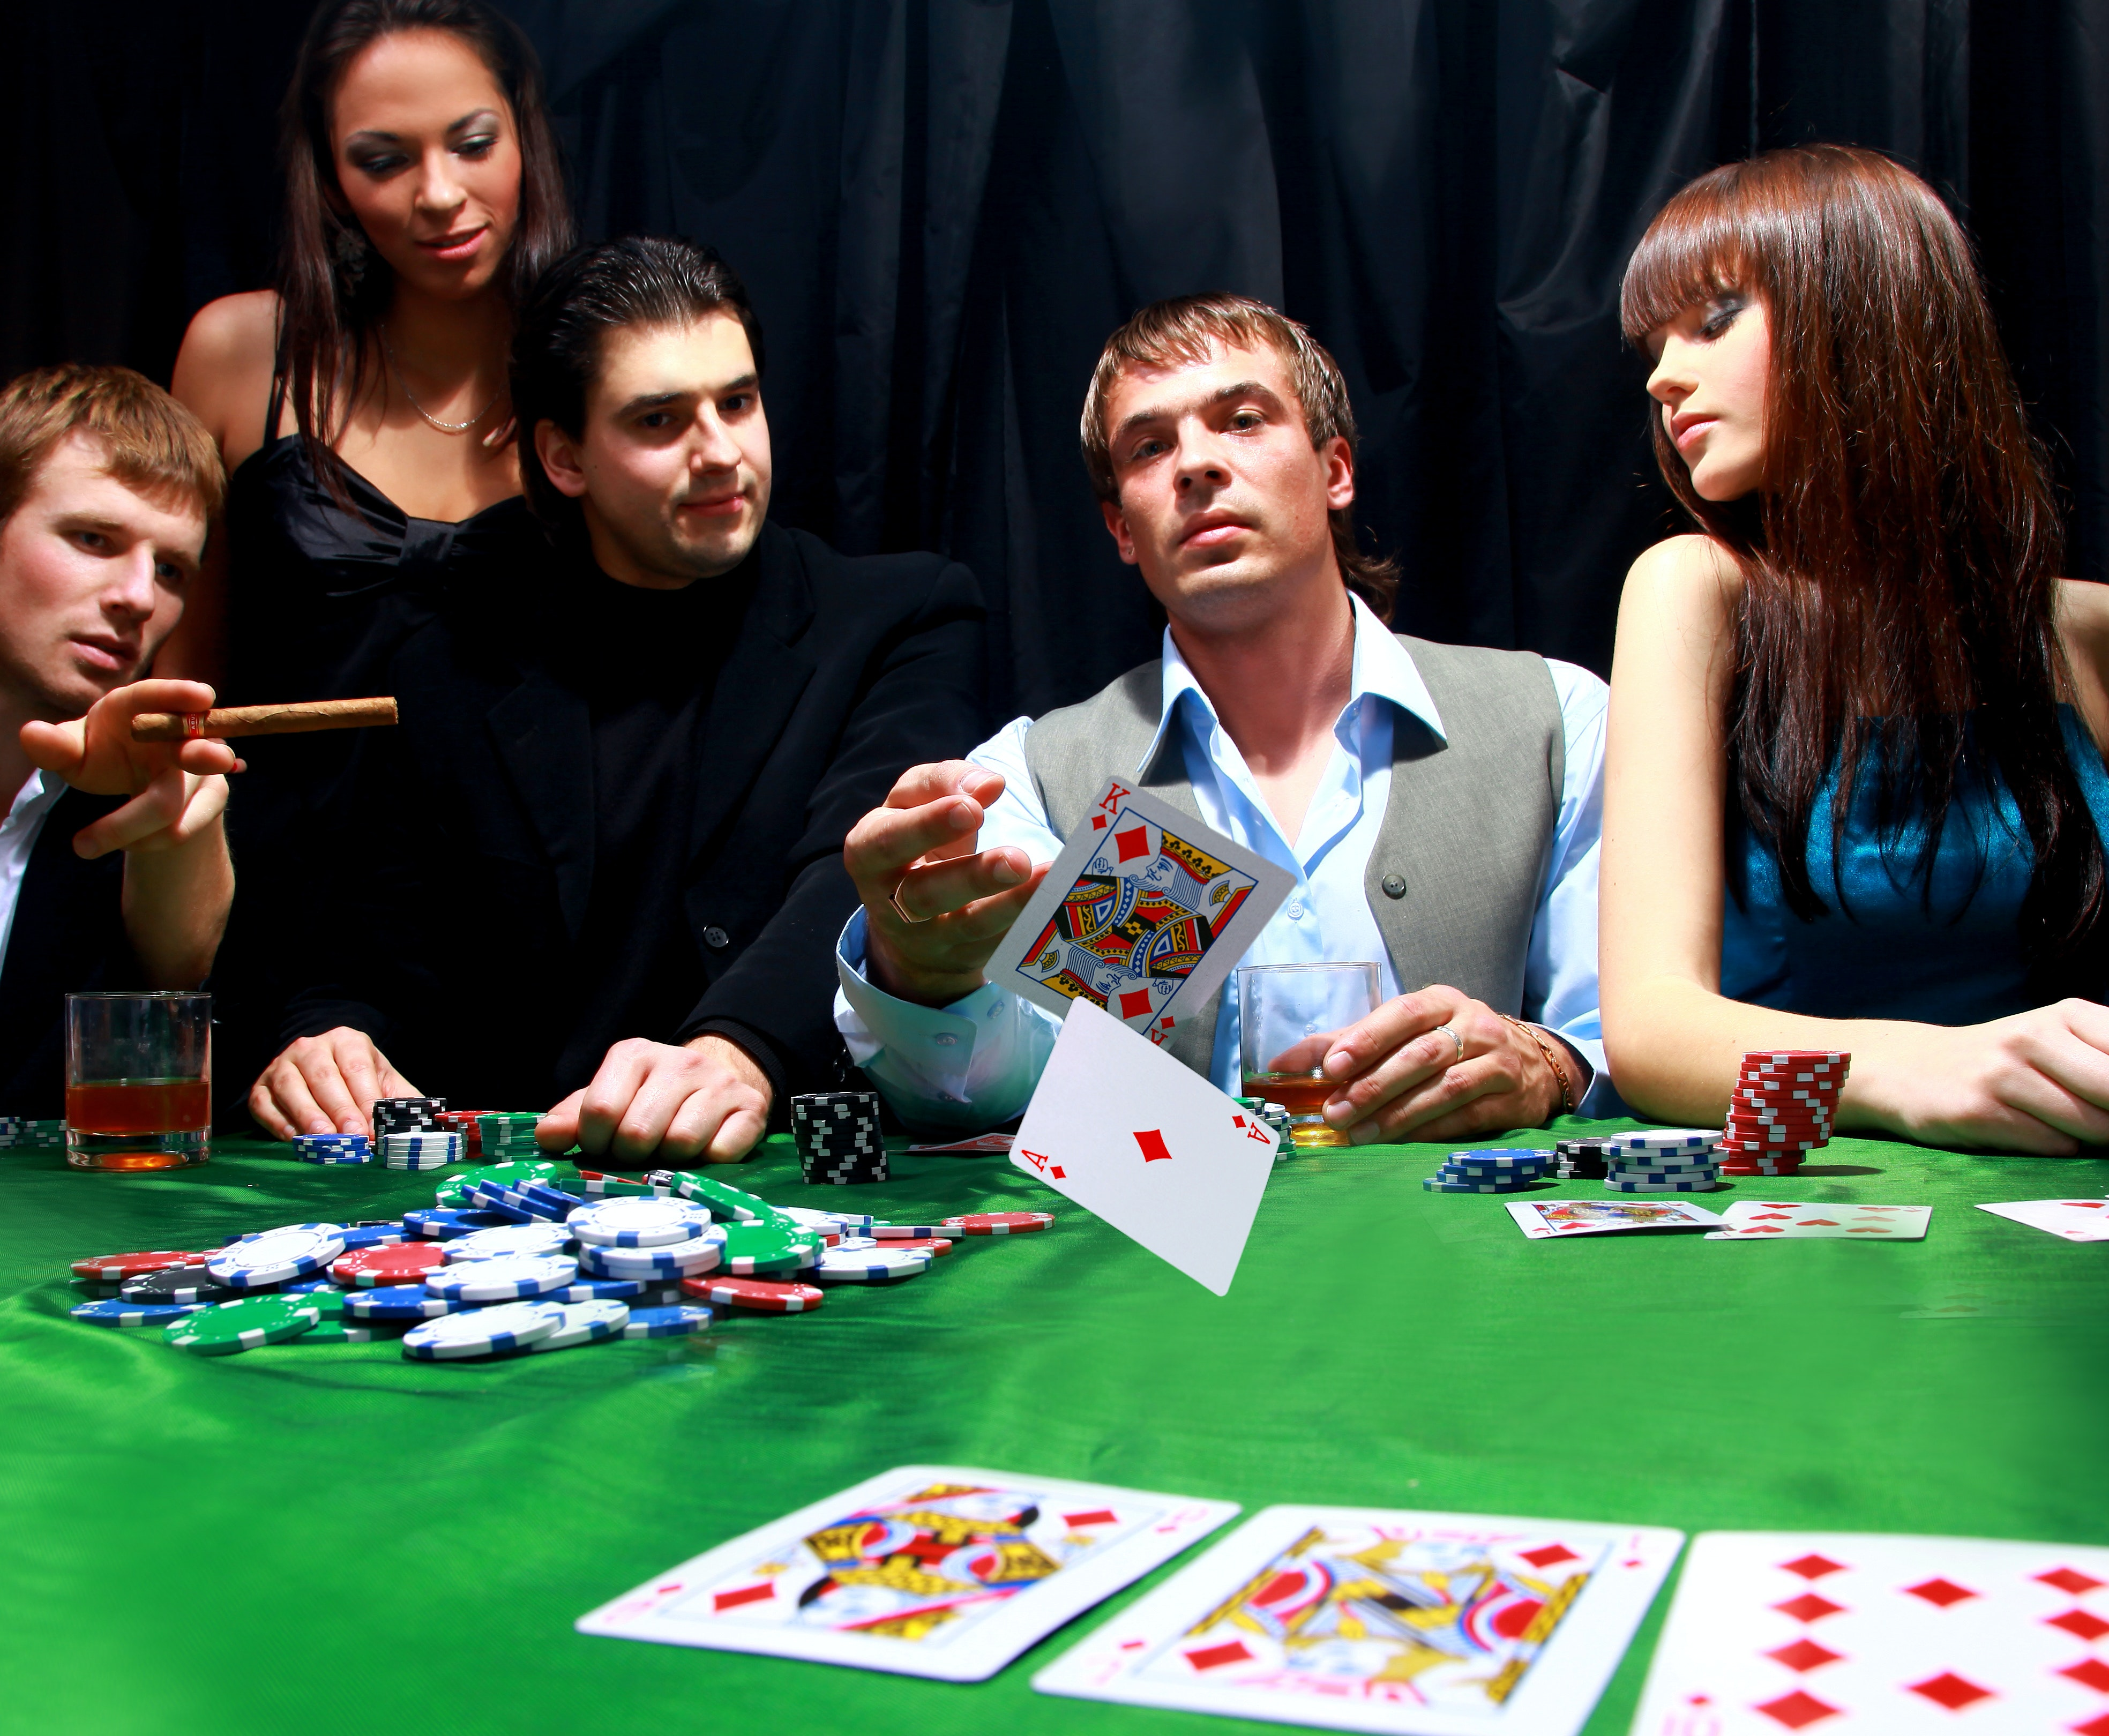 The best games for high rollers